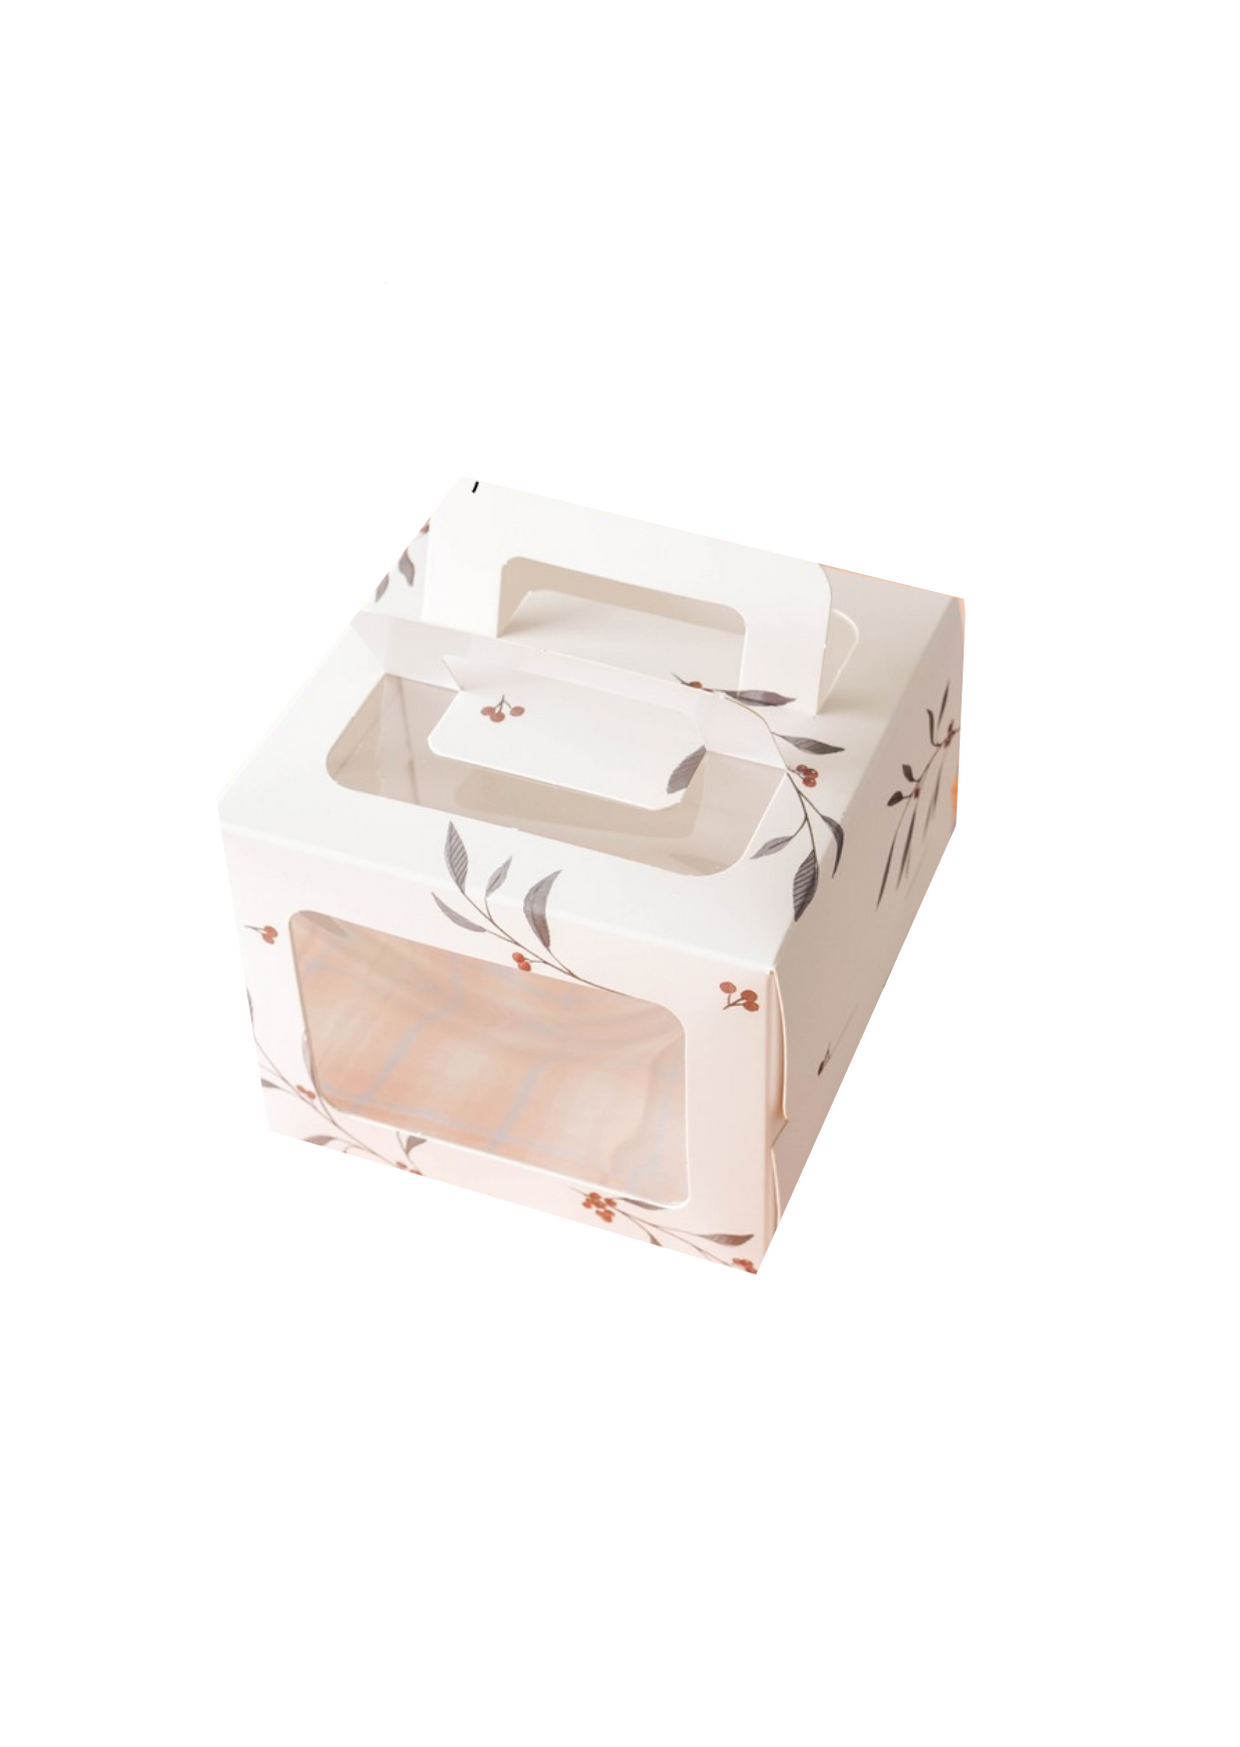 Premium Small Cake Boxes - cake boxes, cupcake boxes, thecakeboxes